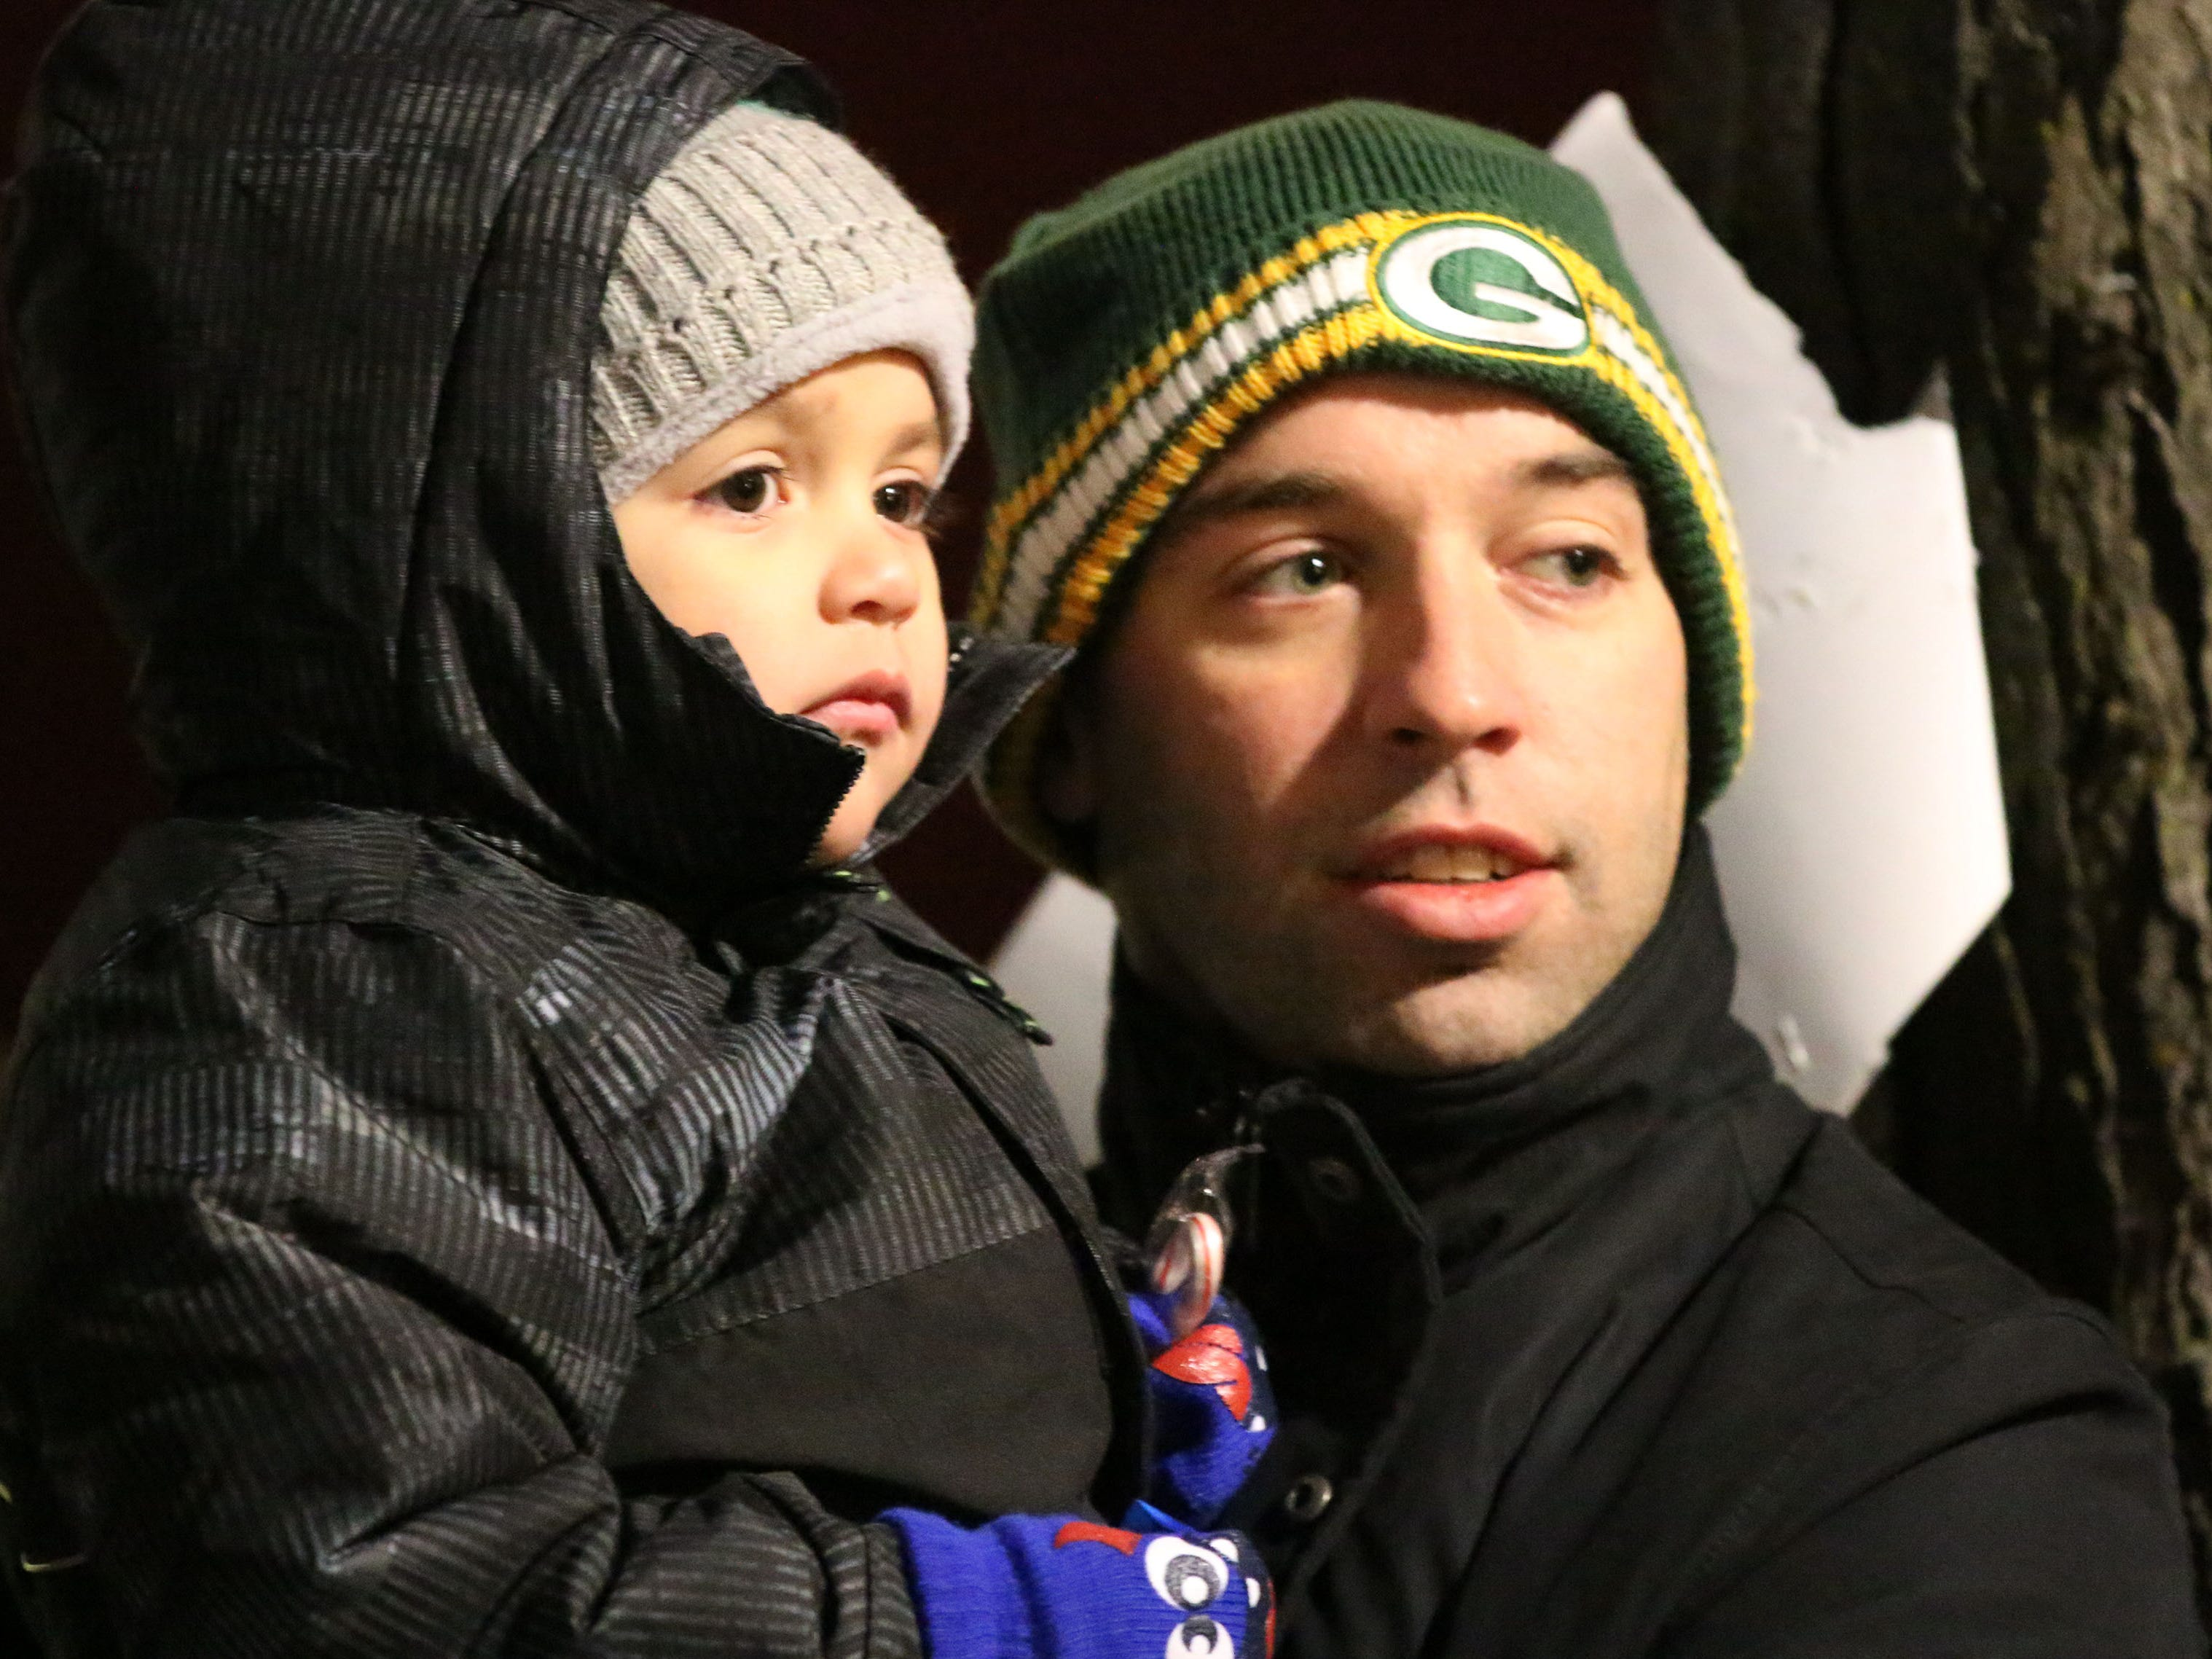 Brad Hoban of Sheboygan and his son Hudson, 4,  watch the 26th Annual Jaycees Holiday Parade, Sunday, November 25, 2018 in Sheboygan, Wis.